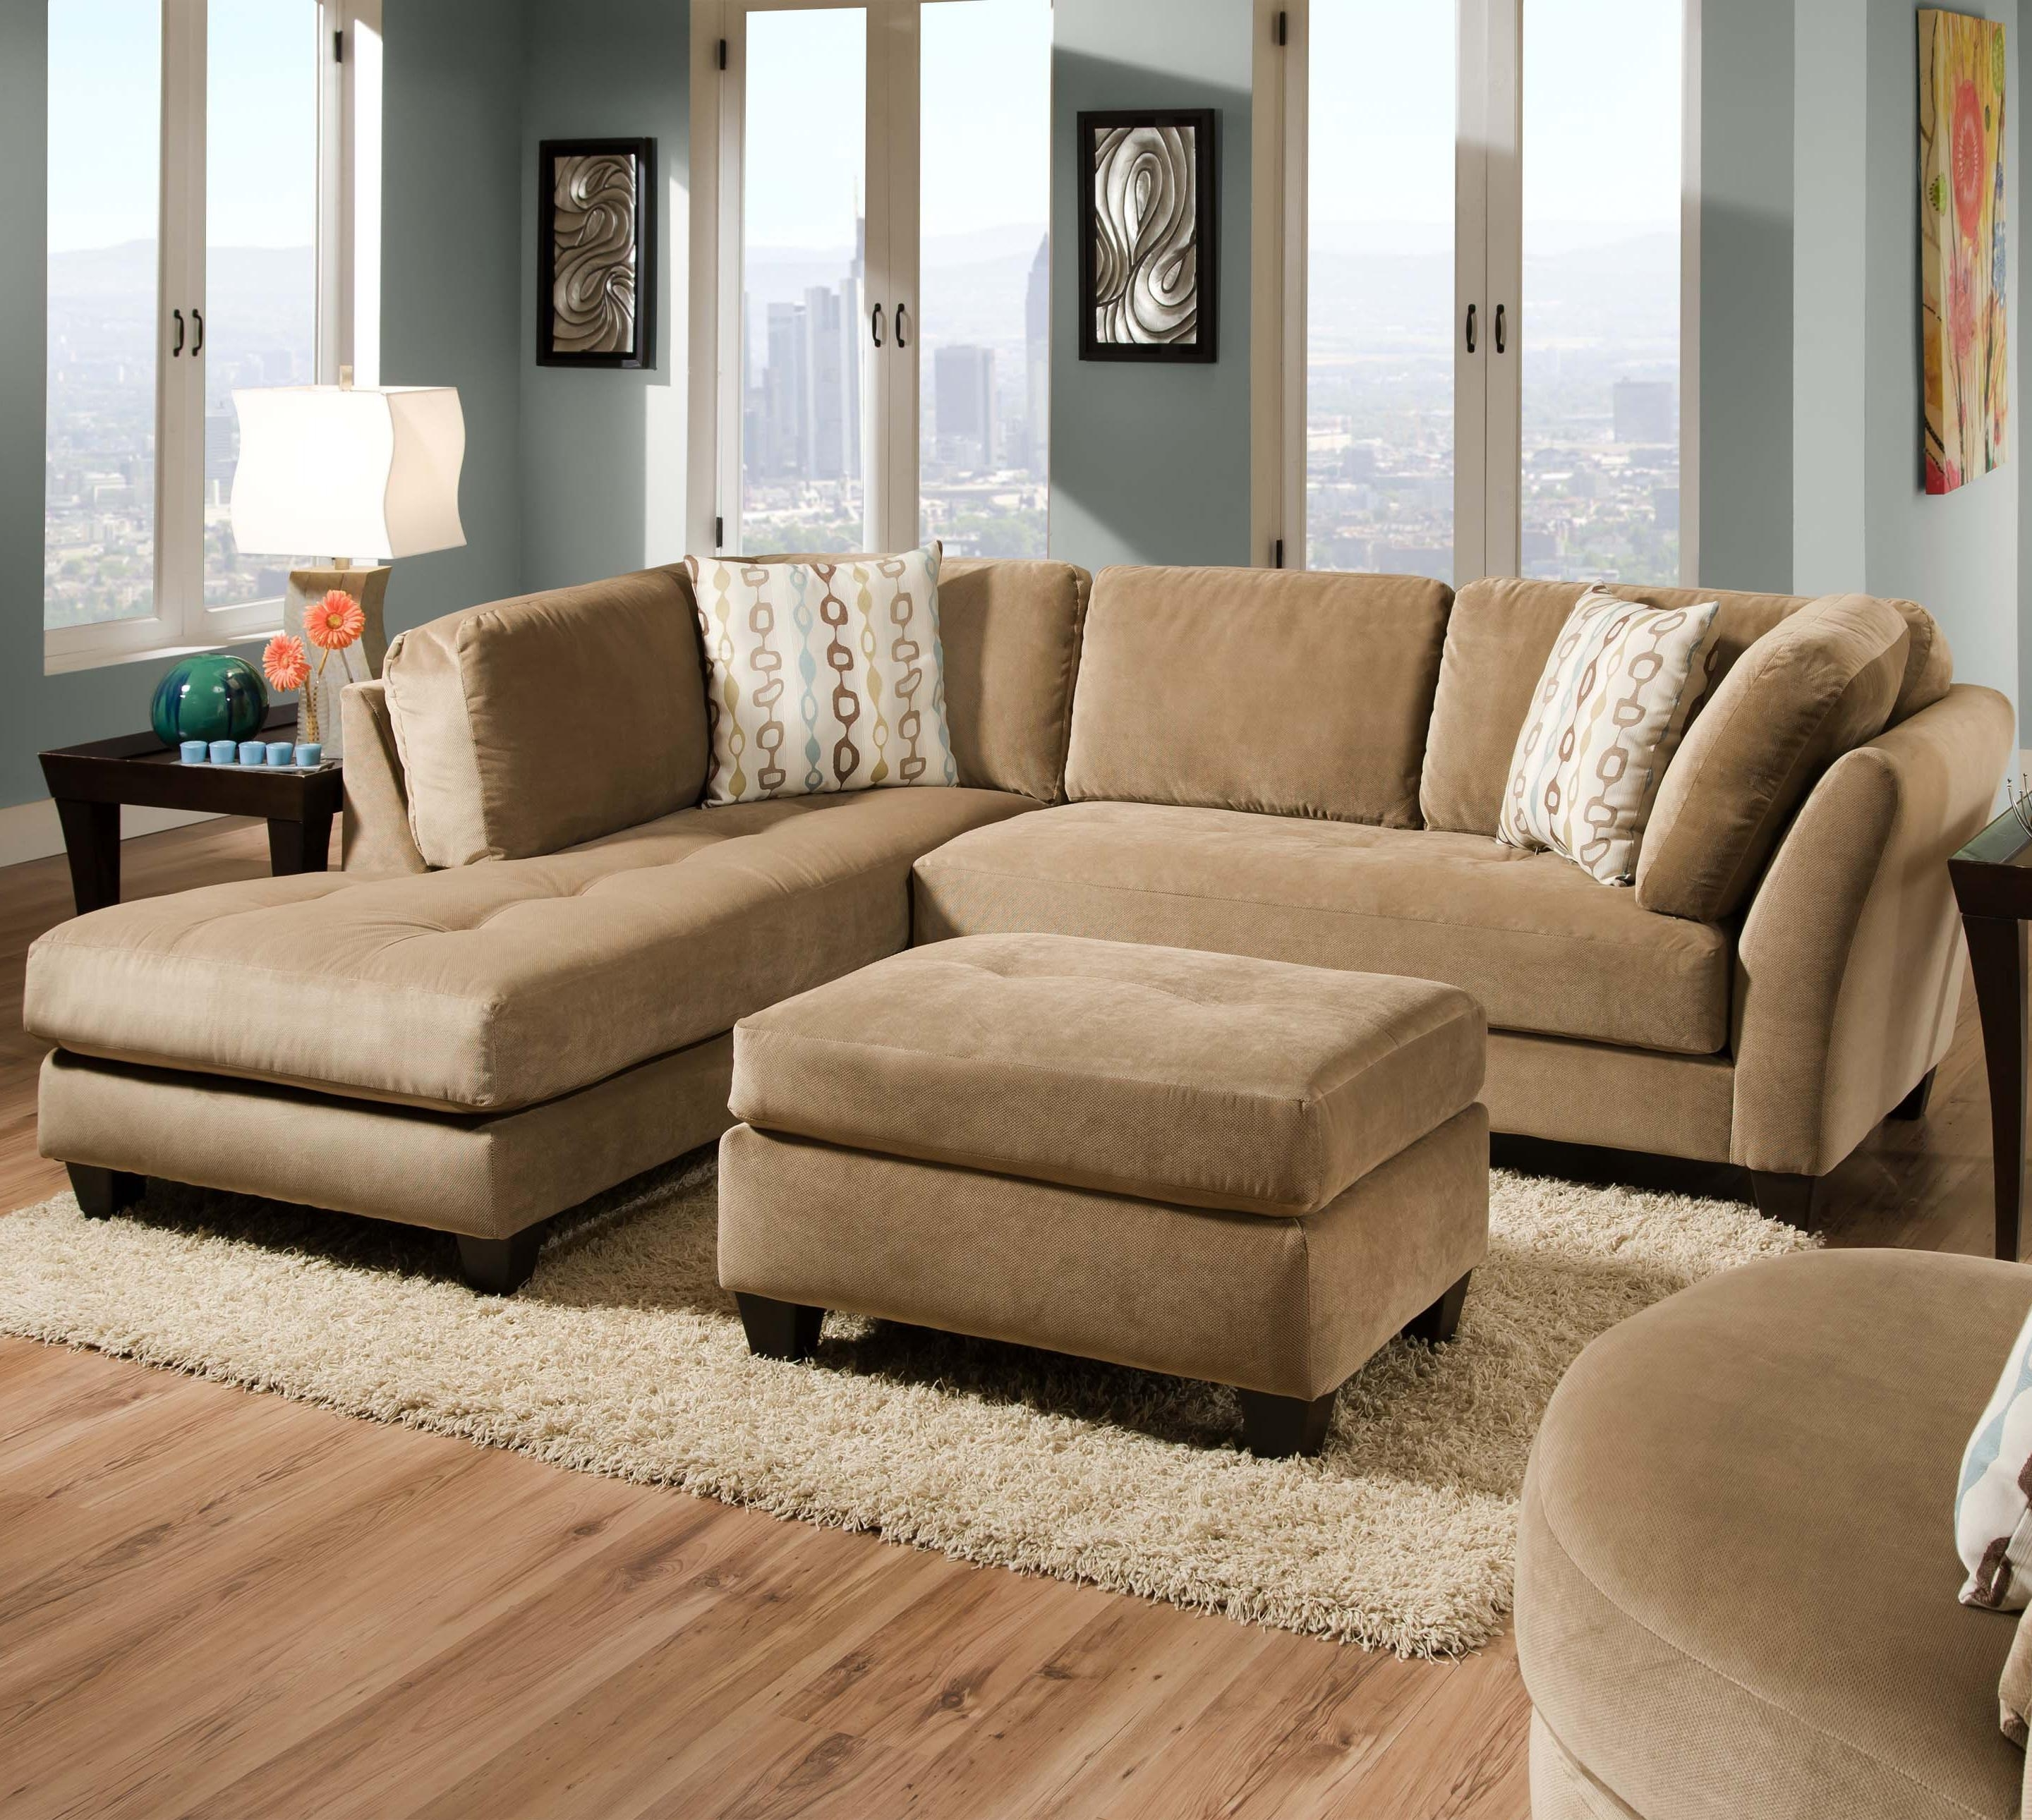 35B Slugger Mocha 2 Piece Sectionalcorinthian – Great American For Newest Memphis Tn Sectional Sofas (View 1 of 15)